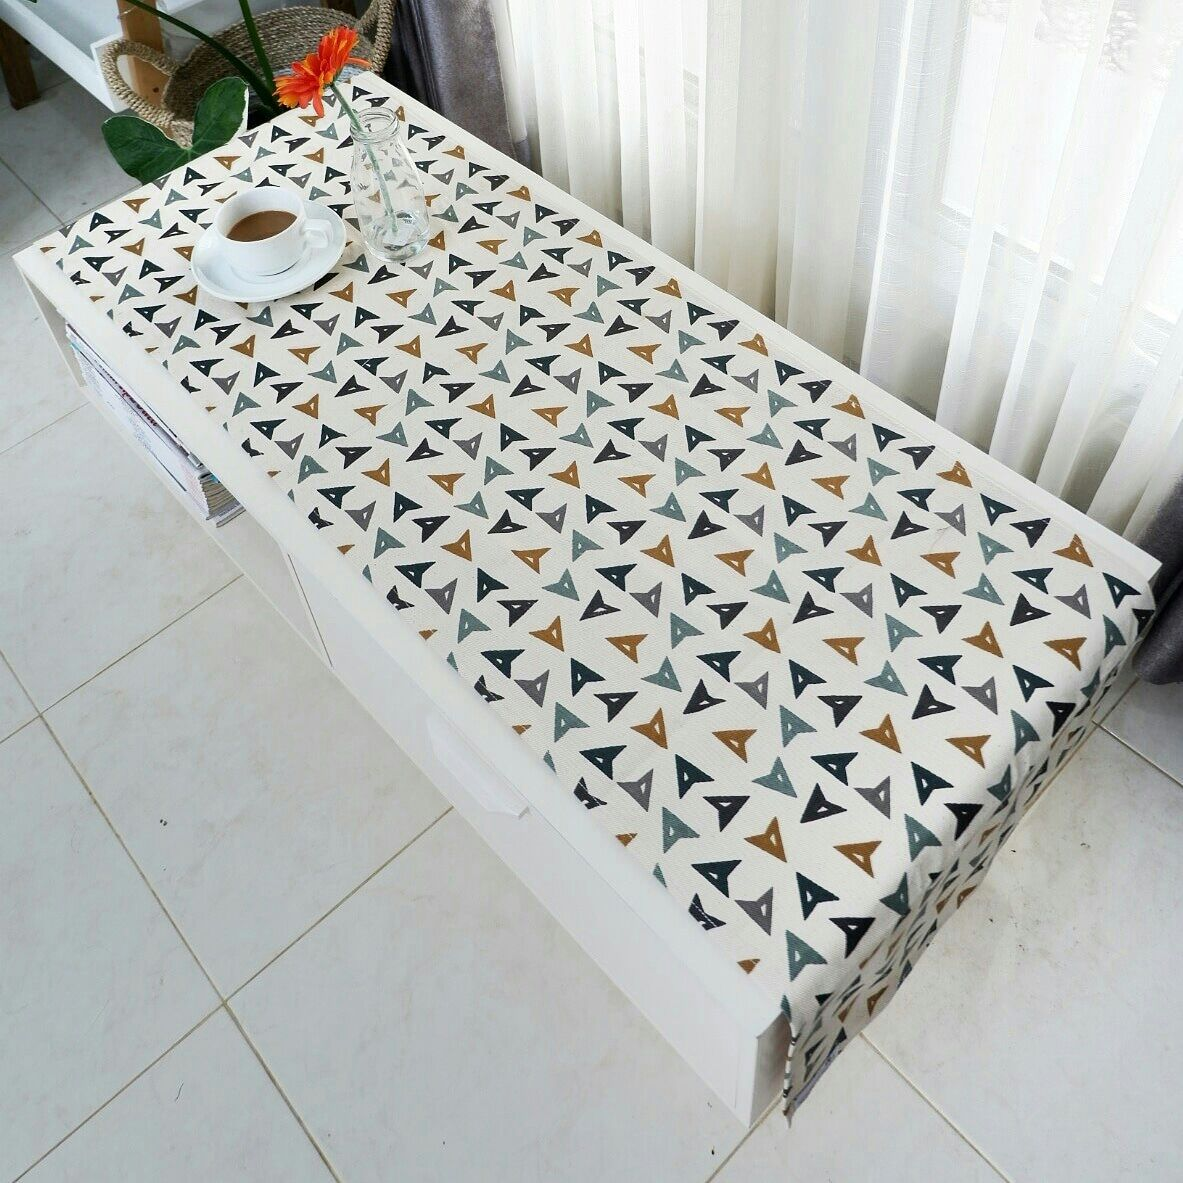 Table runner (Taplak meja) - Boomerang 22